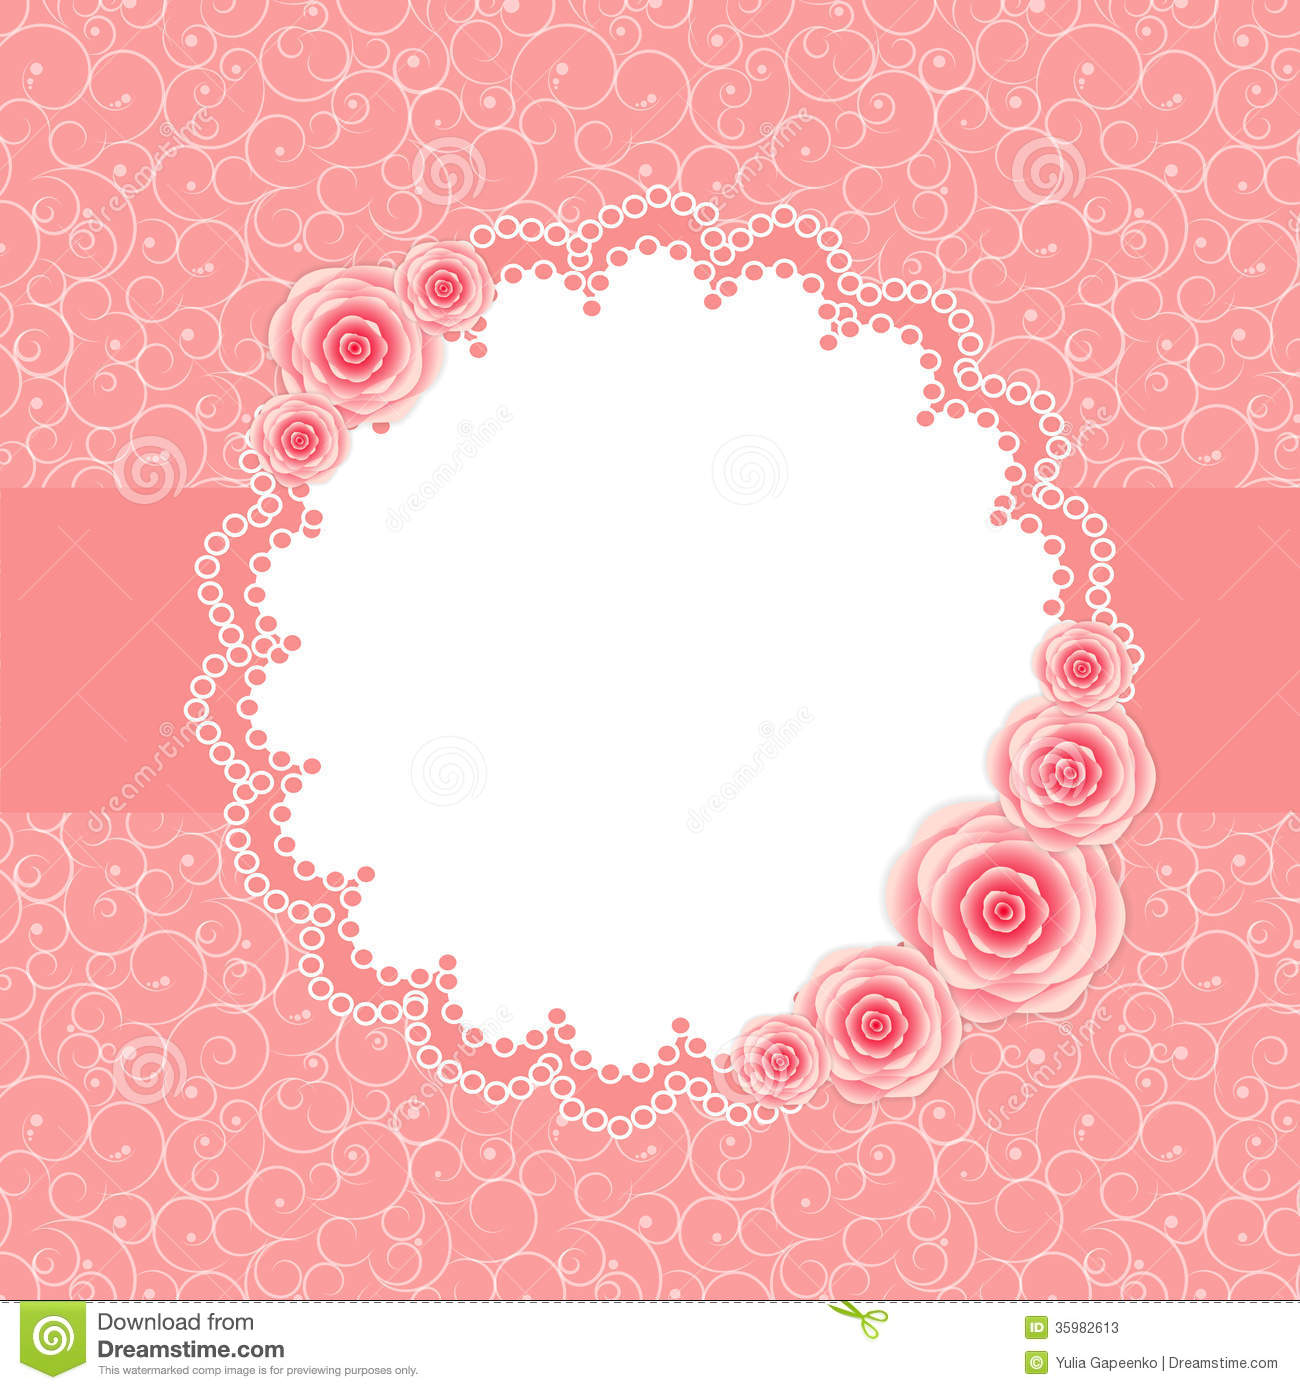 Cute Frame With Rose Flowers Vector Illustration Stock